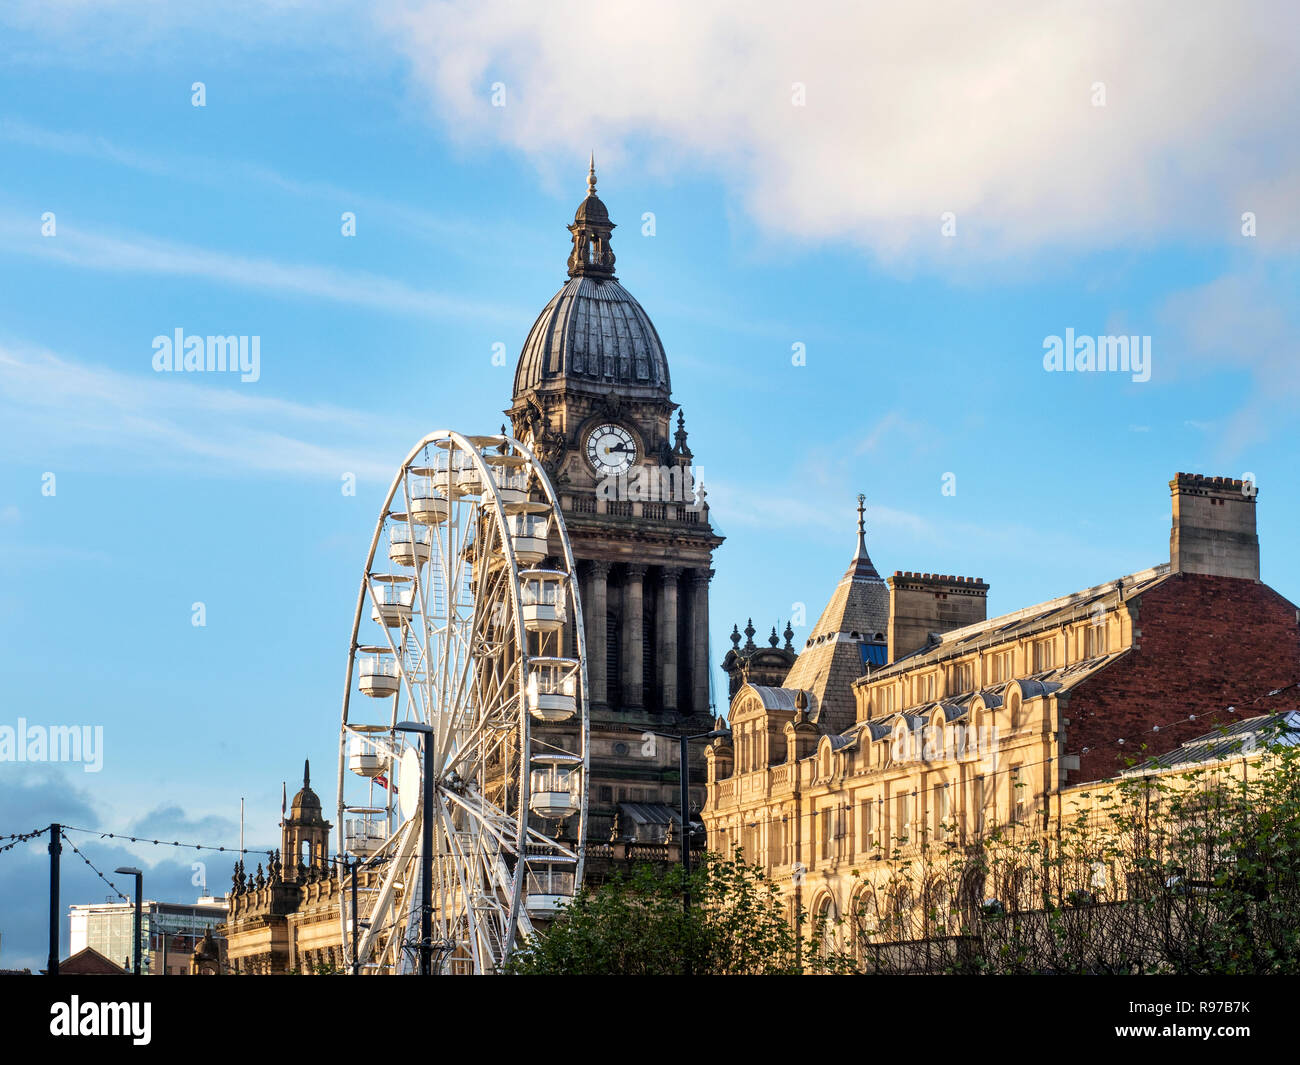 Ferris wheel and the tower of Leeds Town Hall on The Headrow Leeds West Yorkshire England - Stock Image